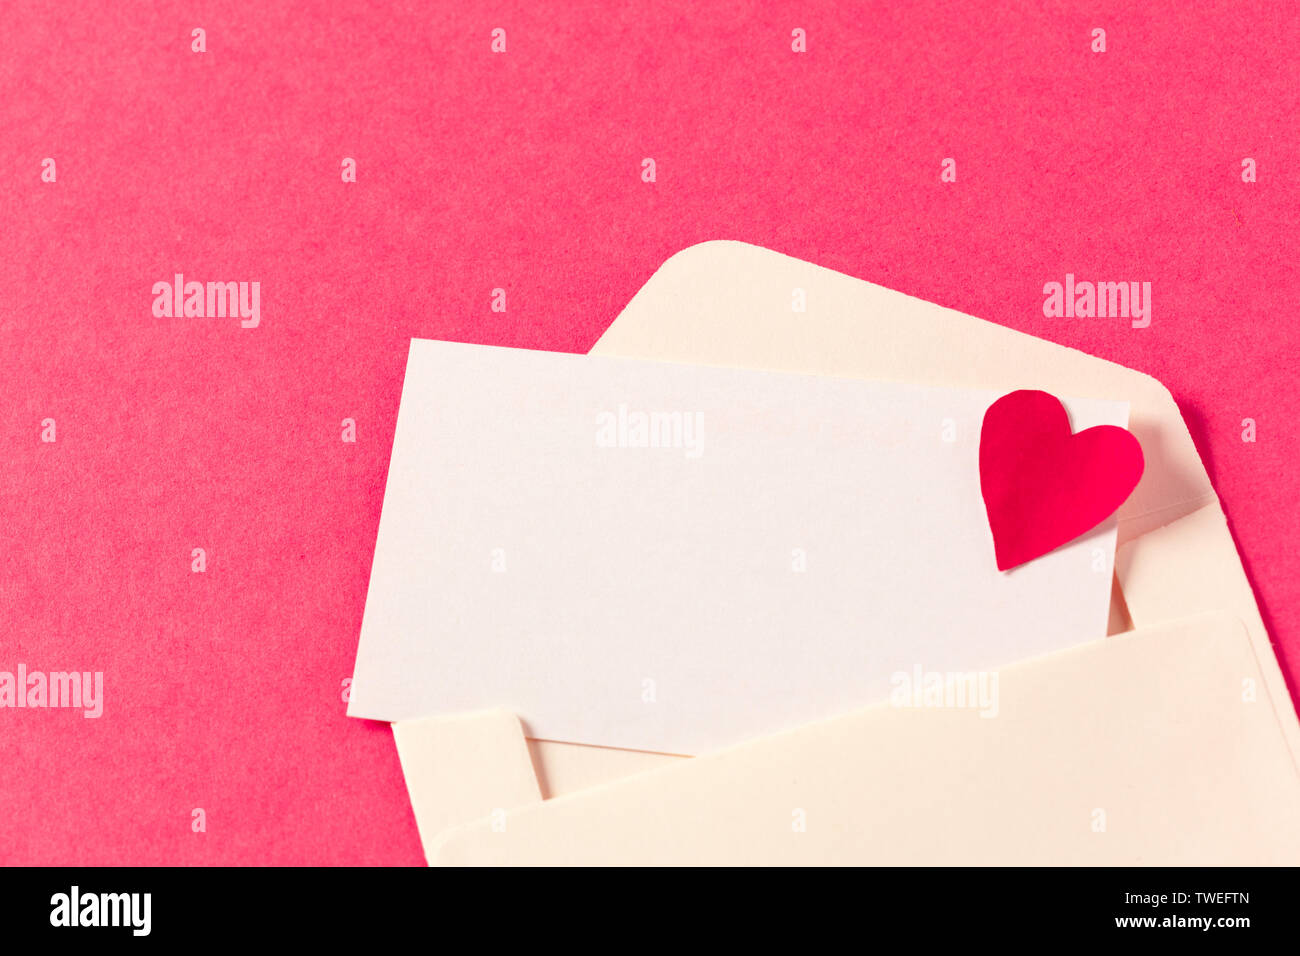 Paper envelopes on a colored pink background - Stock Image